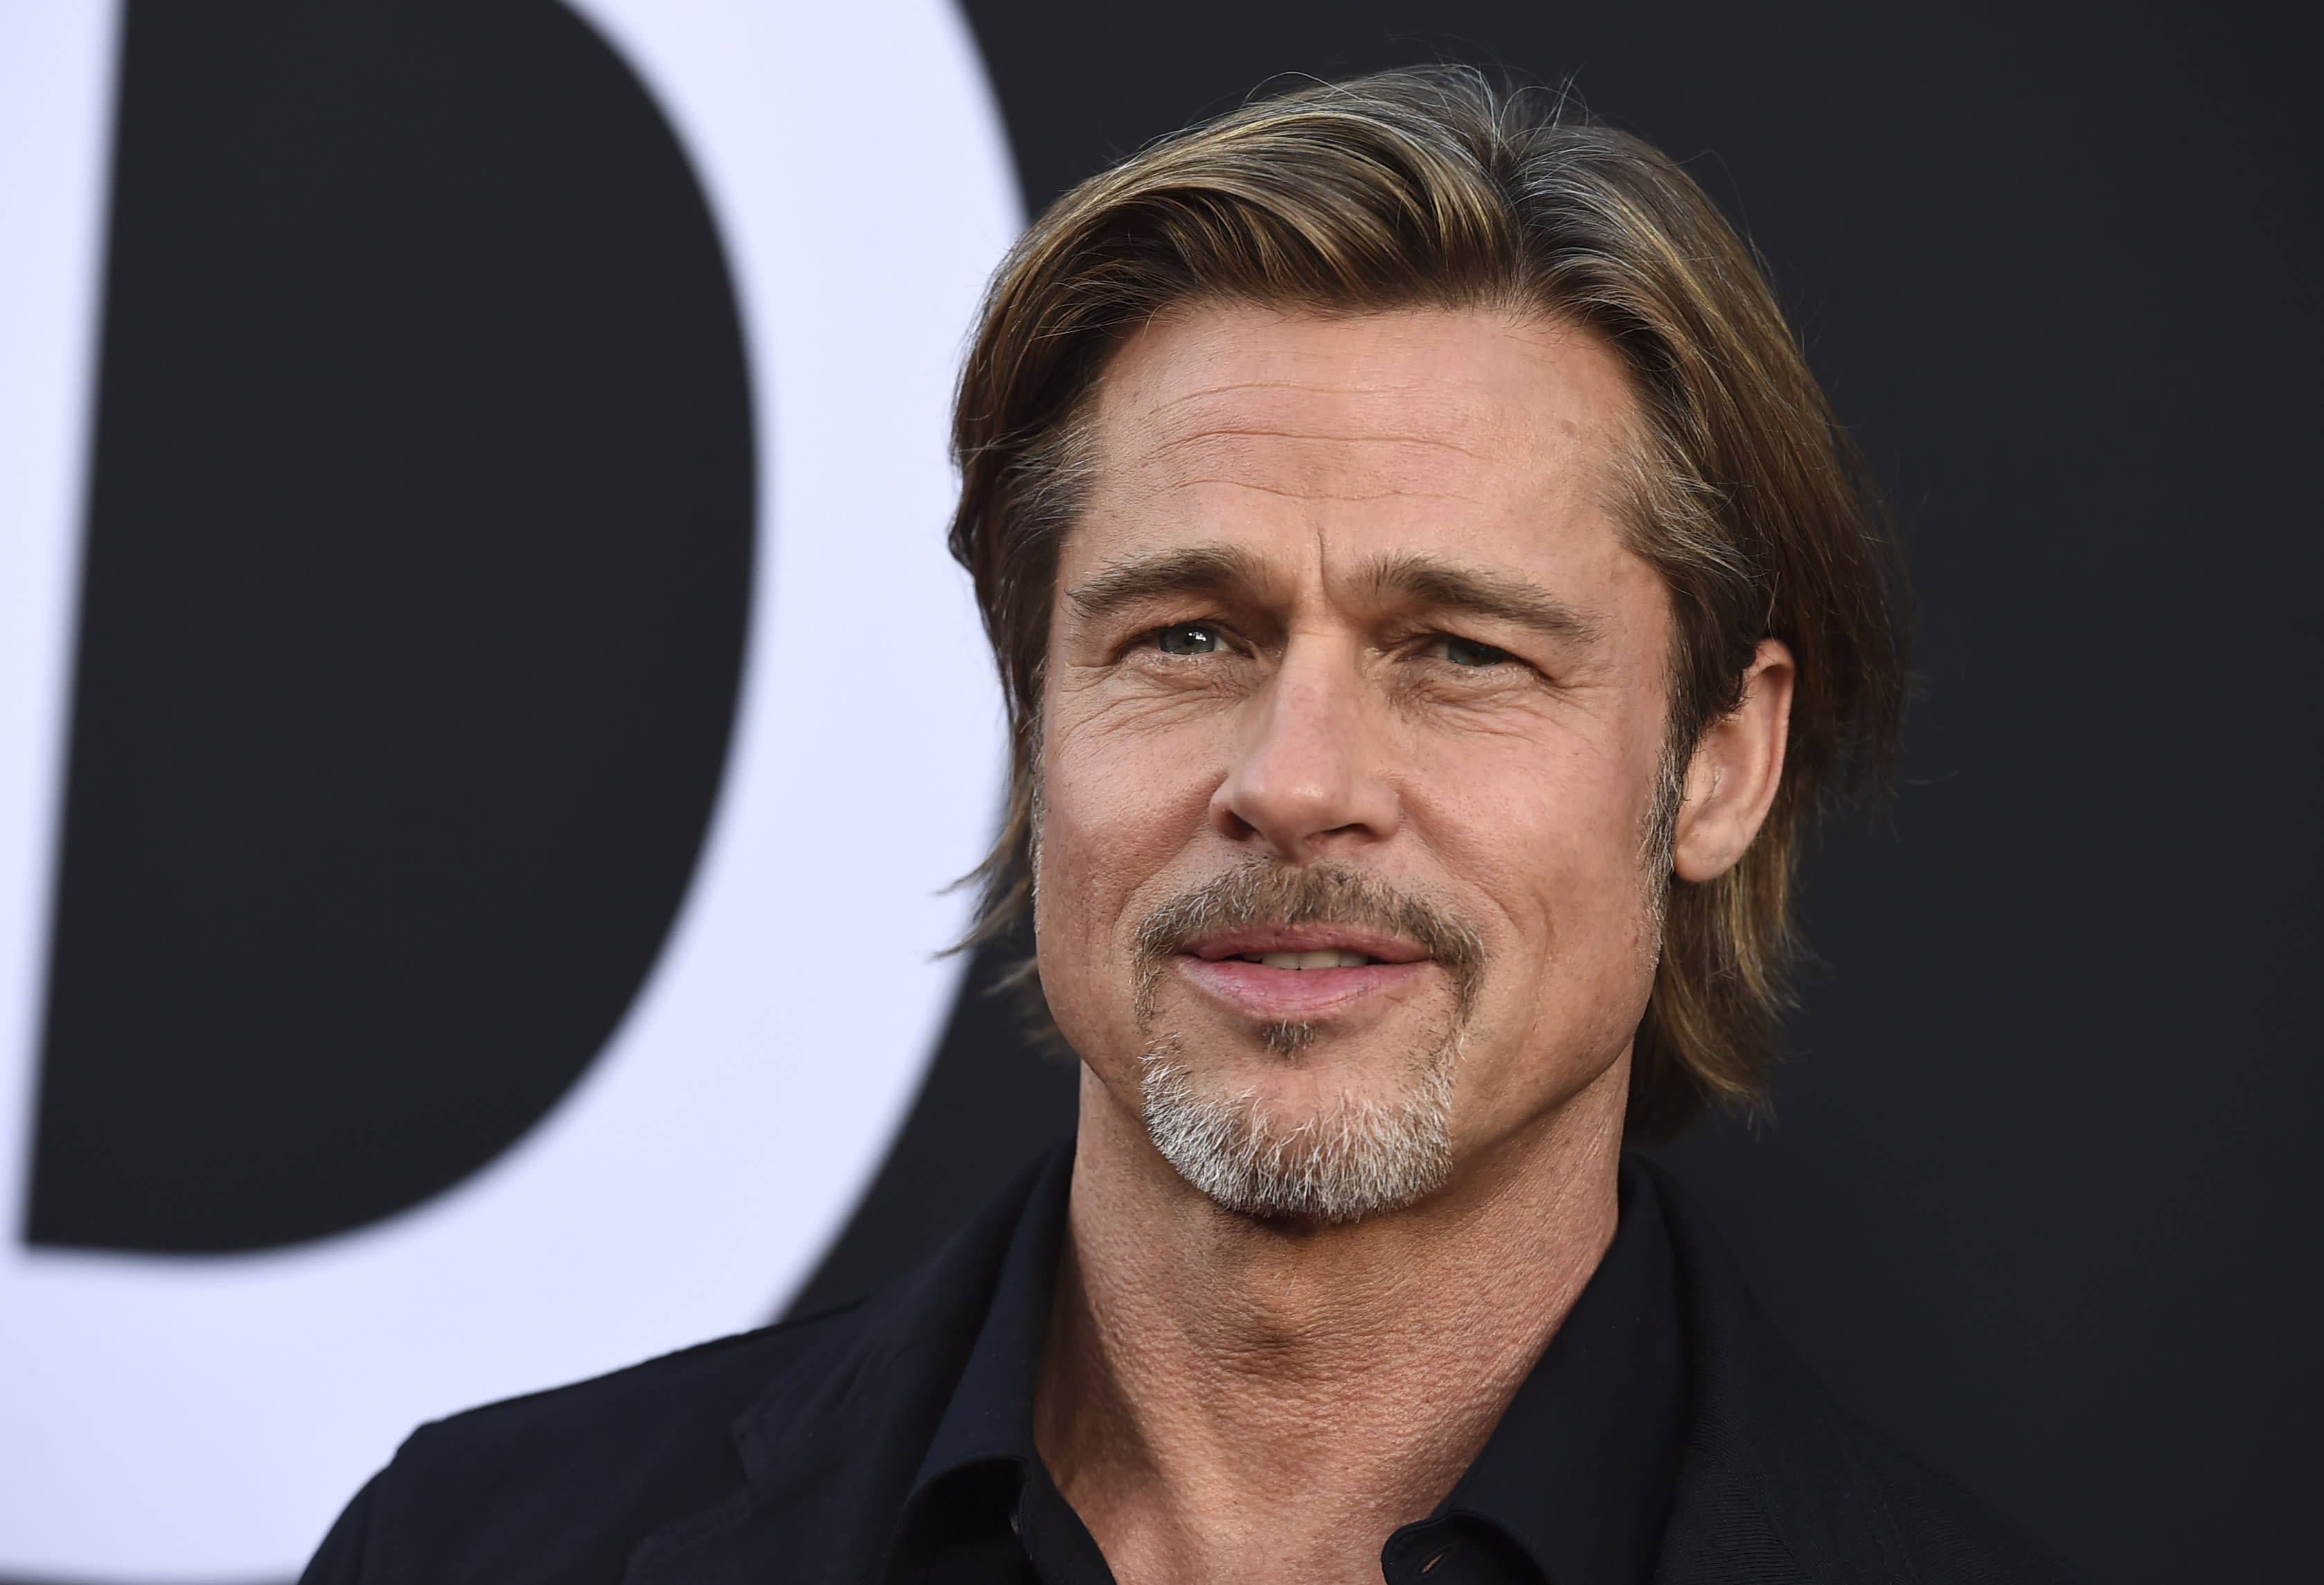 Brad Pitt says that his 'disappointment' with 'Troy' made him rethink his career